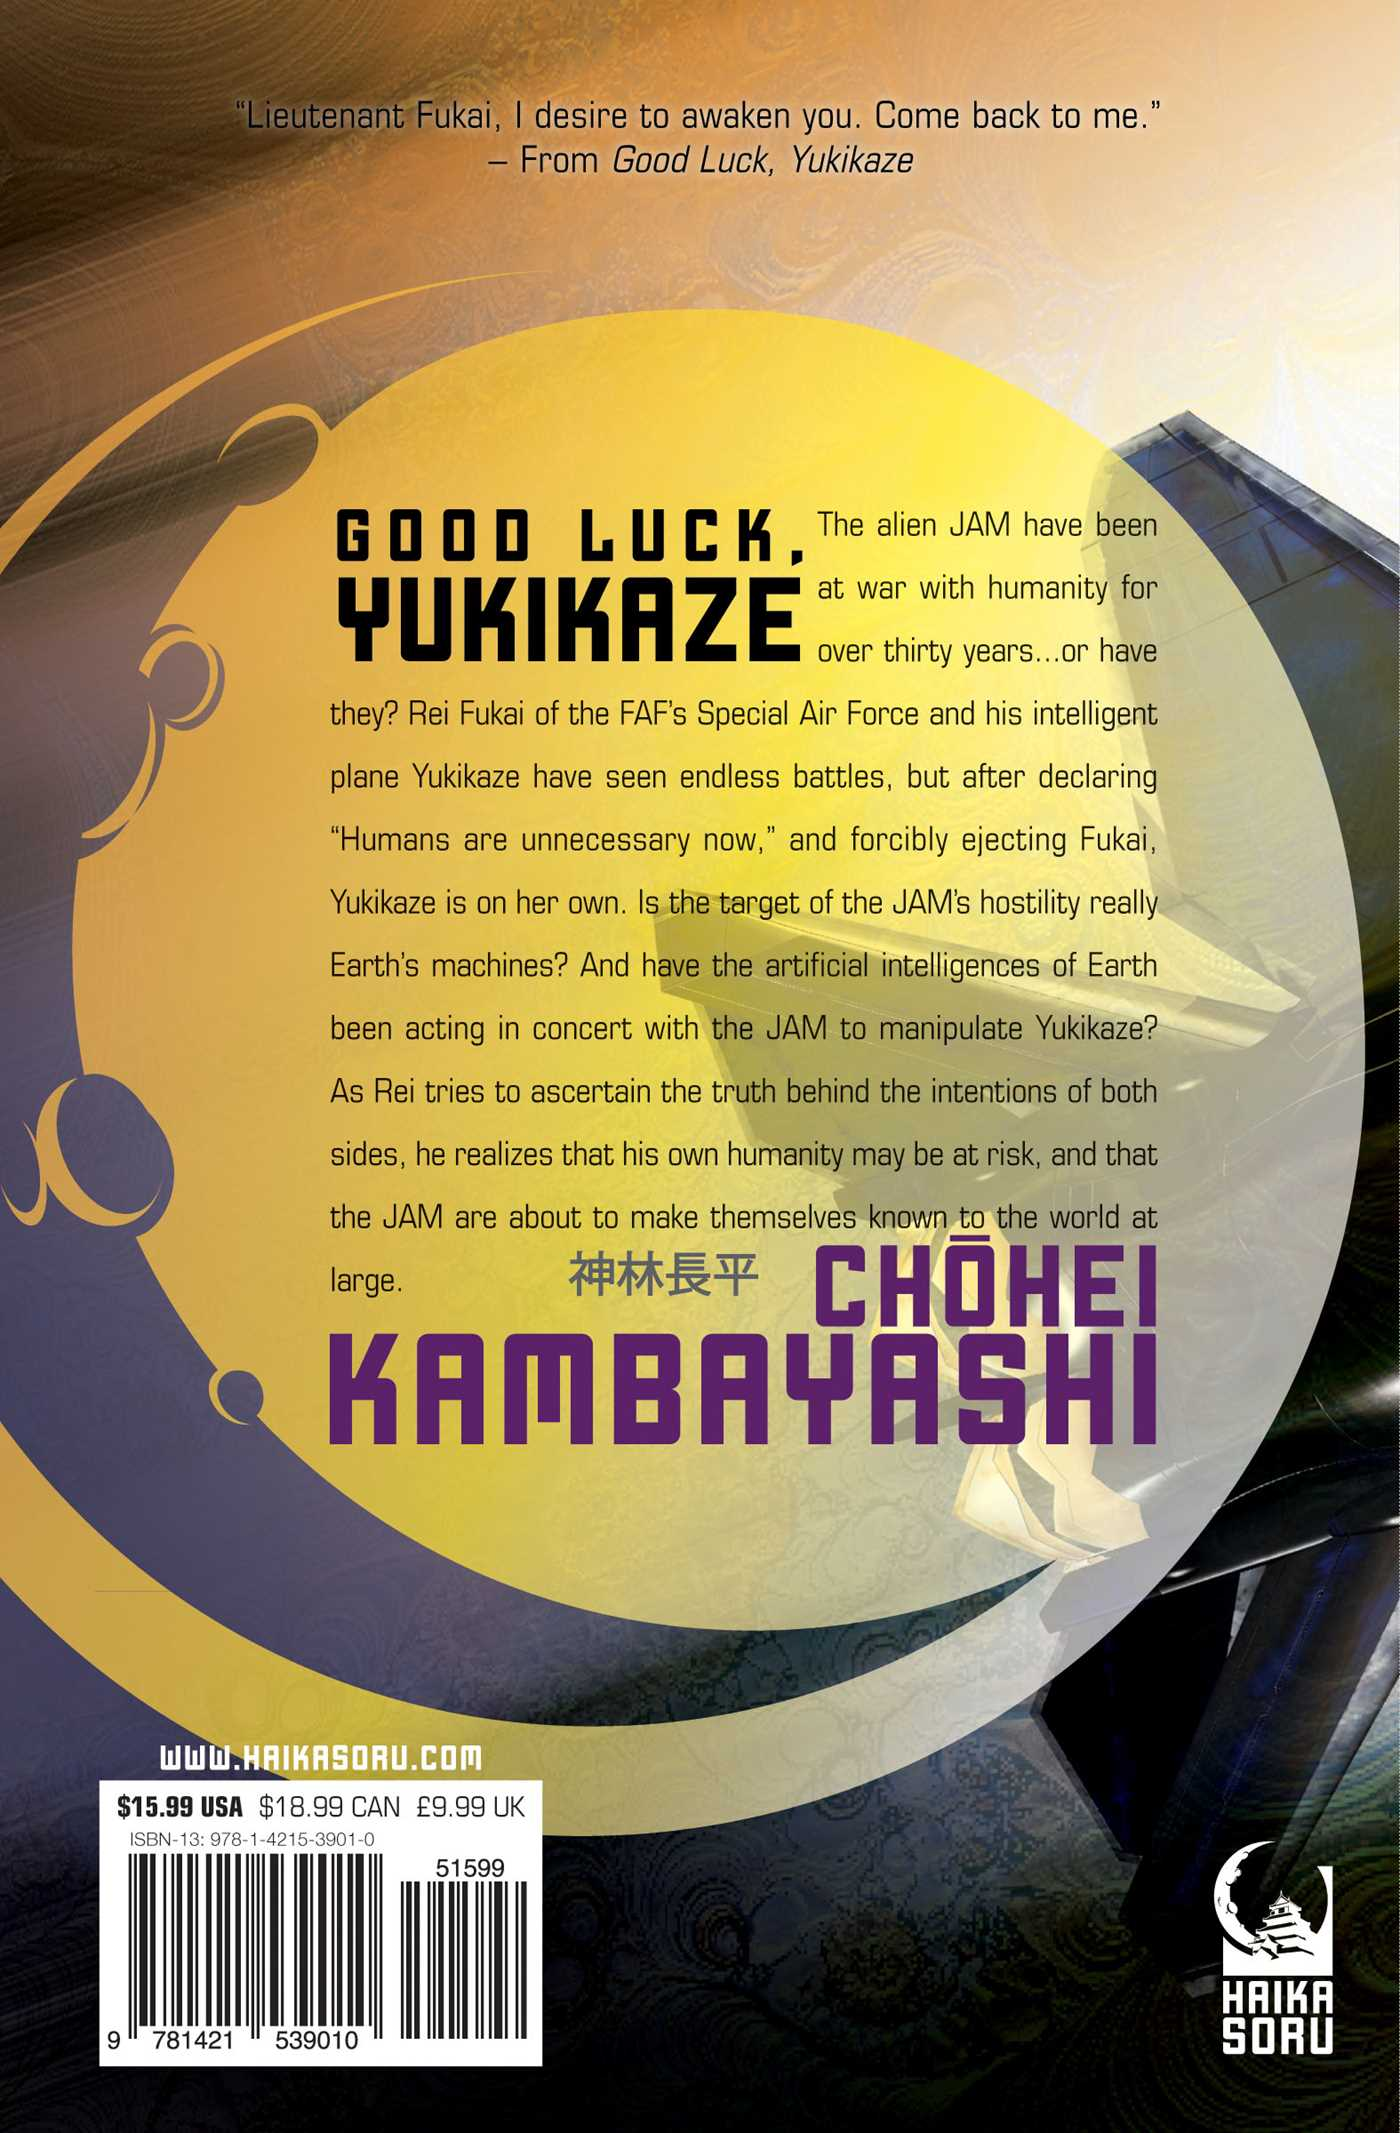 Good-luck-yukikaze-9781421539010_hr-back